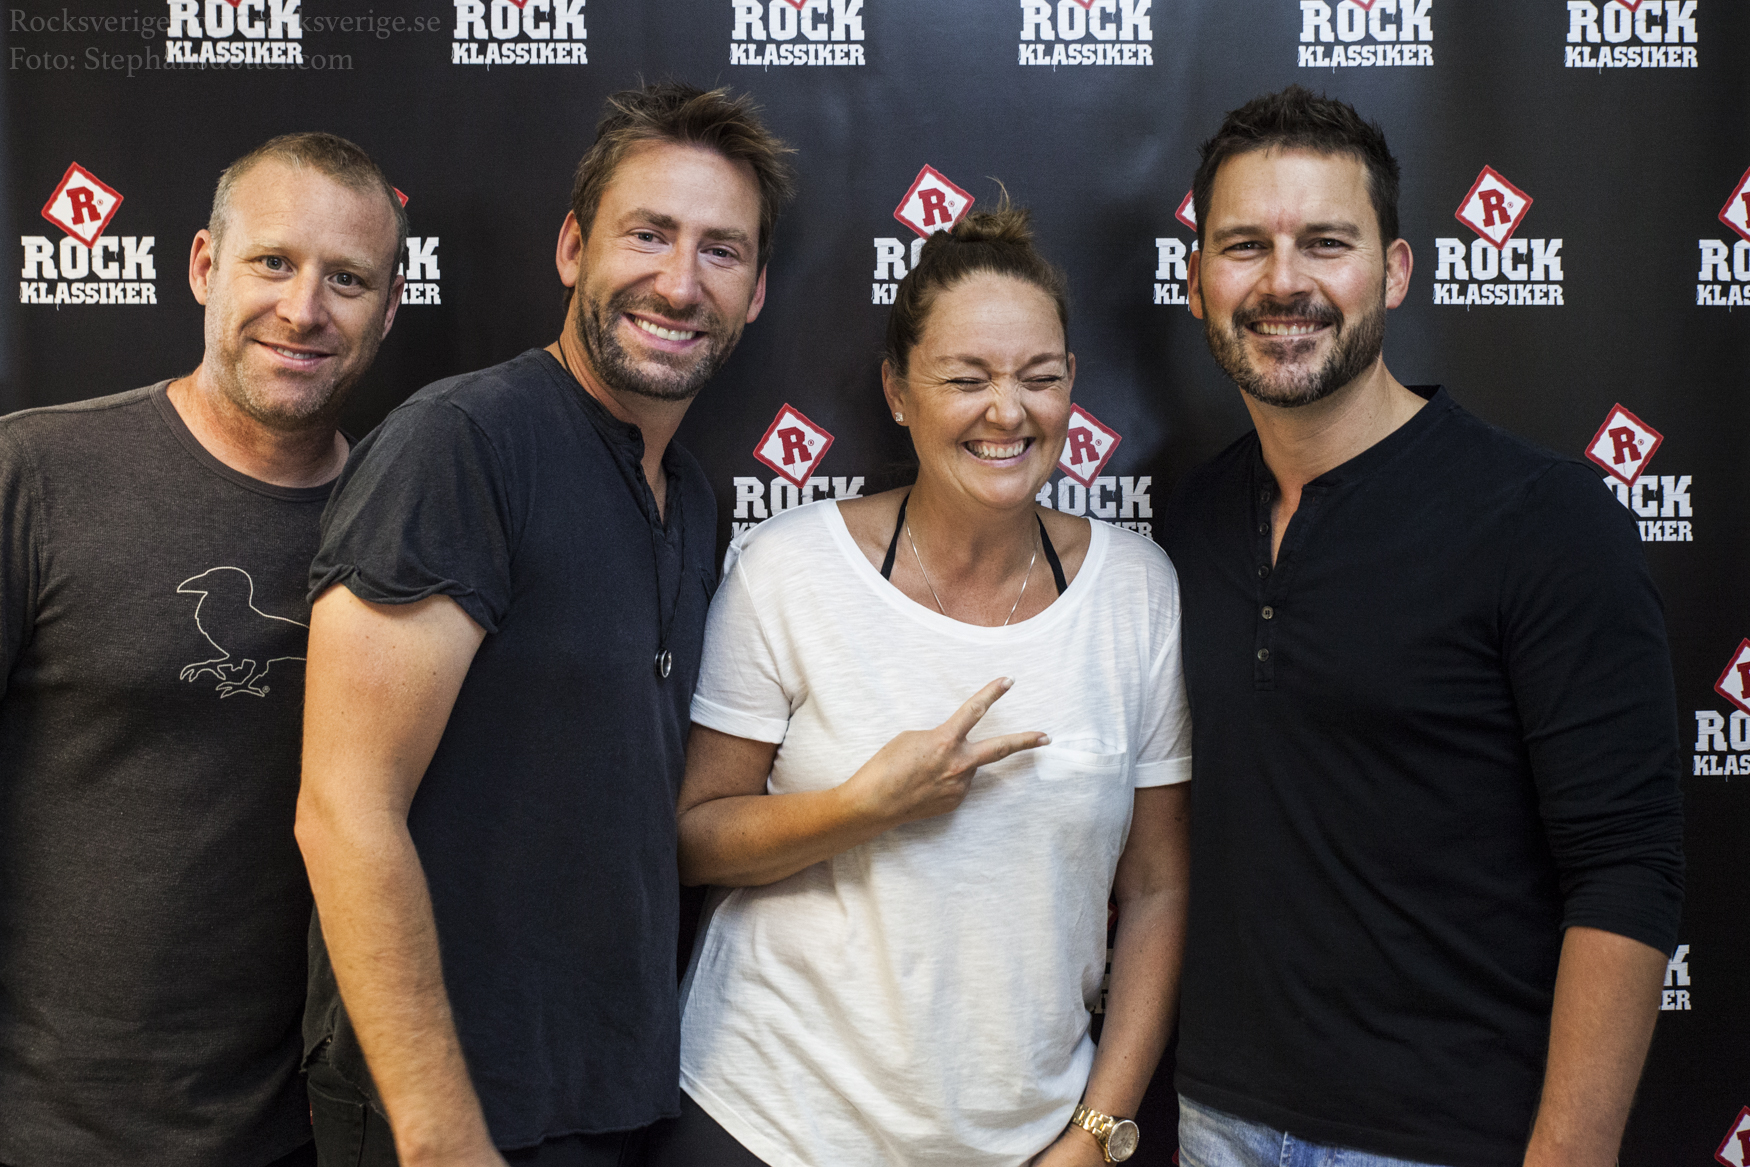 Nickelback meet and greet 2017 image collections greeting card designs nickelback meet and greet 2017 images greeting card designs nickelback 2017 fotohof nickelback 2017 m4hsunfo m4hsunfo m4hsunfo